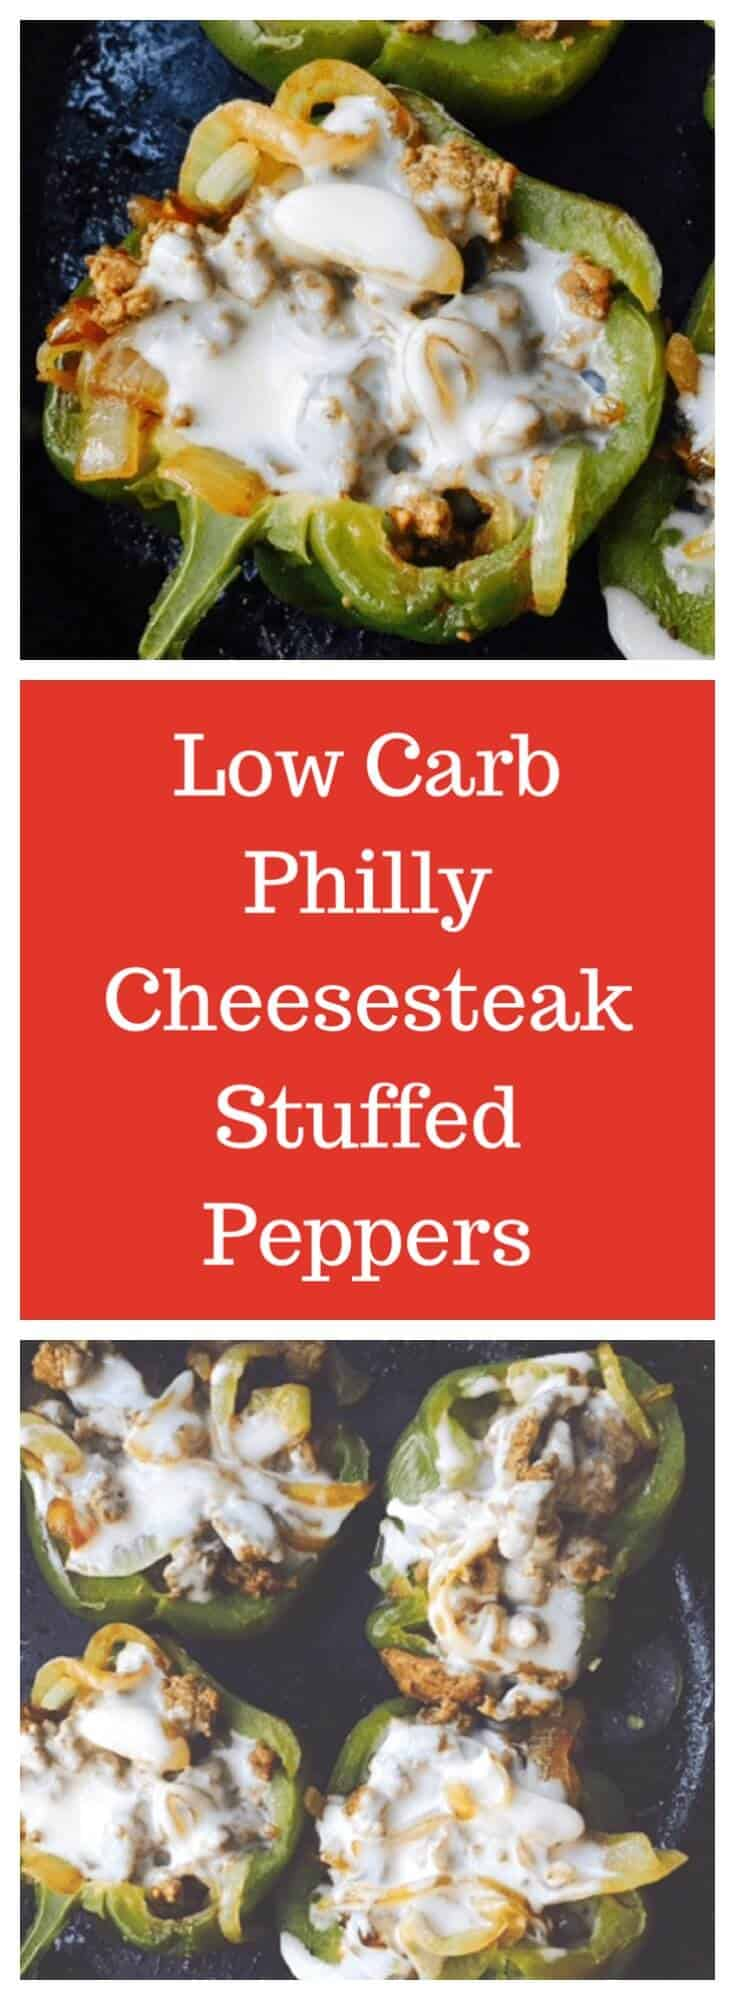 Low carb stuffed peppers features tender beef and onions covered in melted cheese. This easy cheese steak recipe makes a quick weeknight dinner the whole family will love. #stuffedpeppers